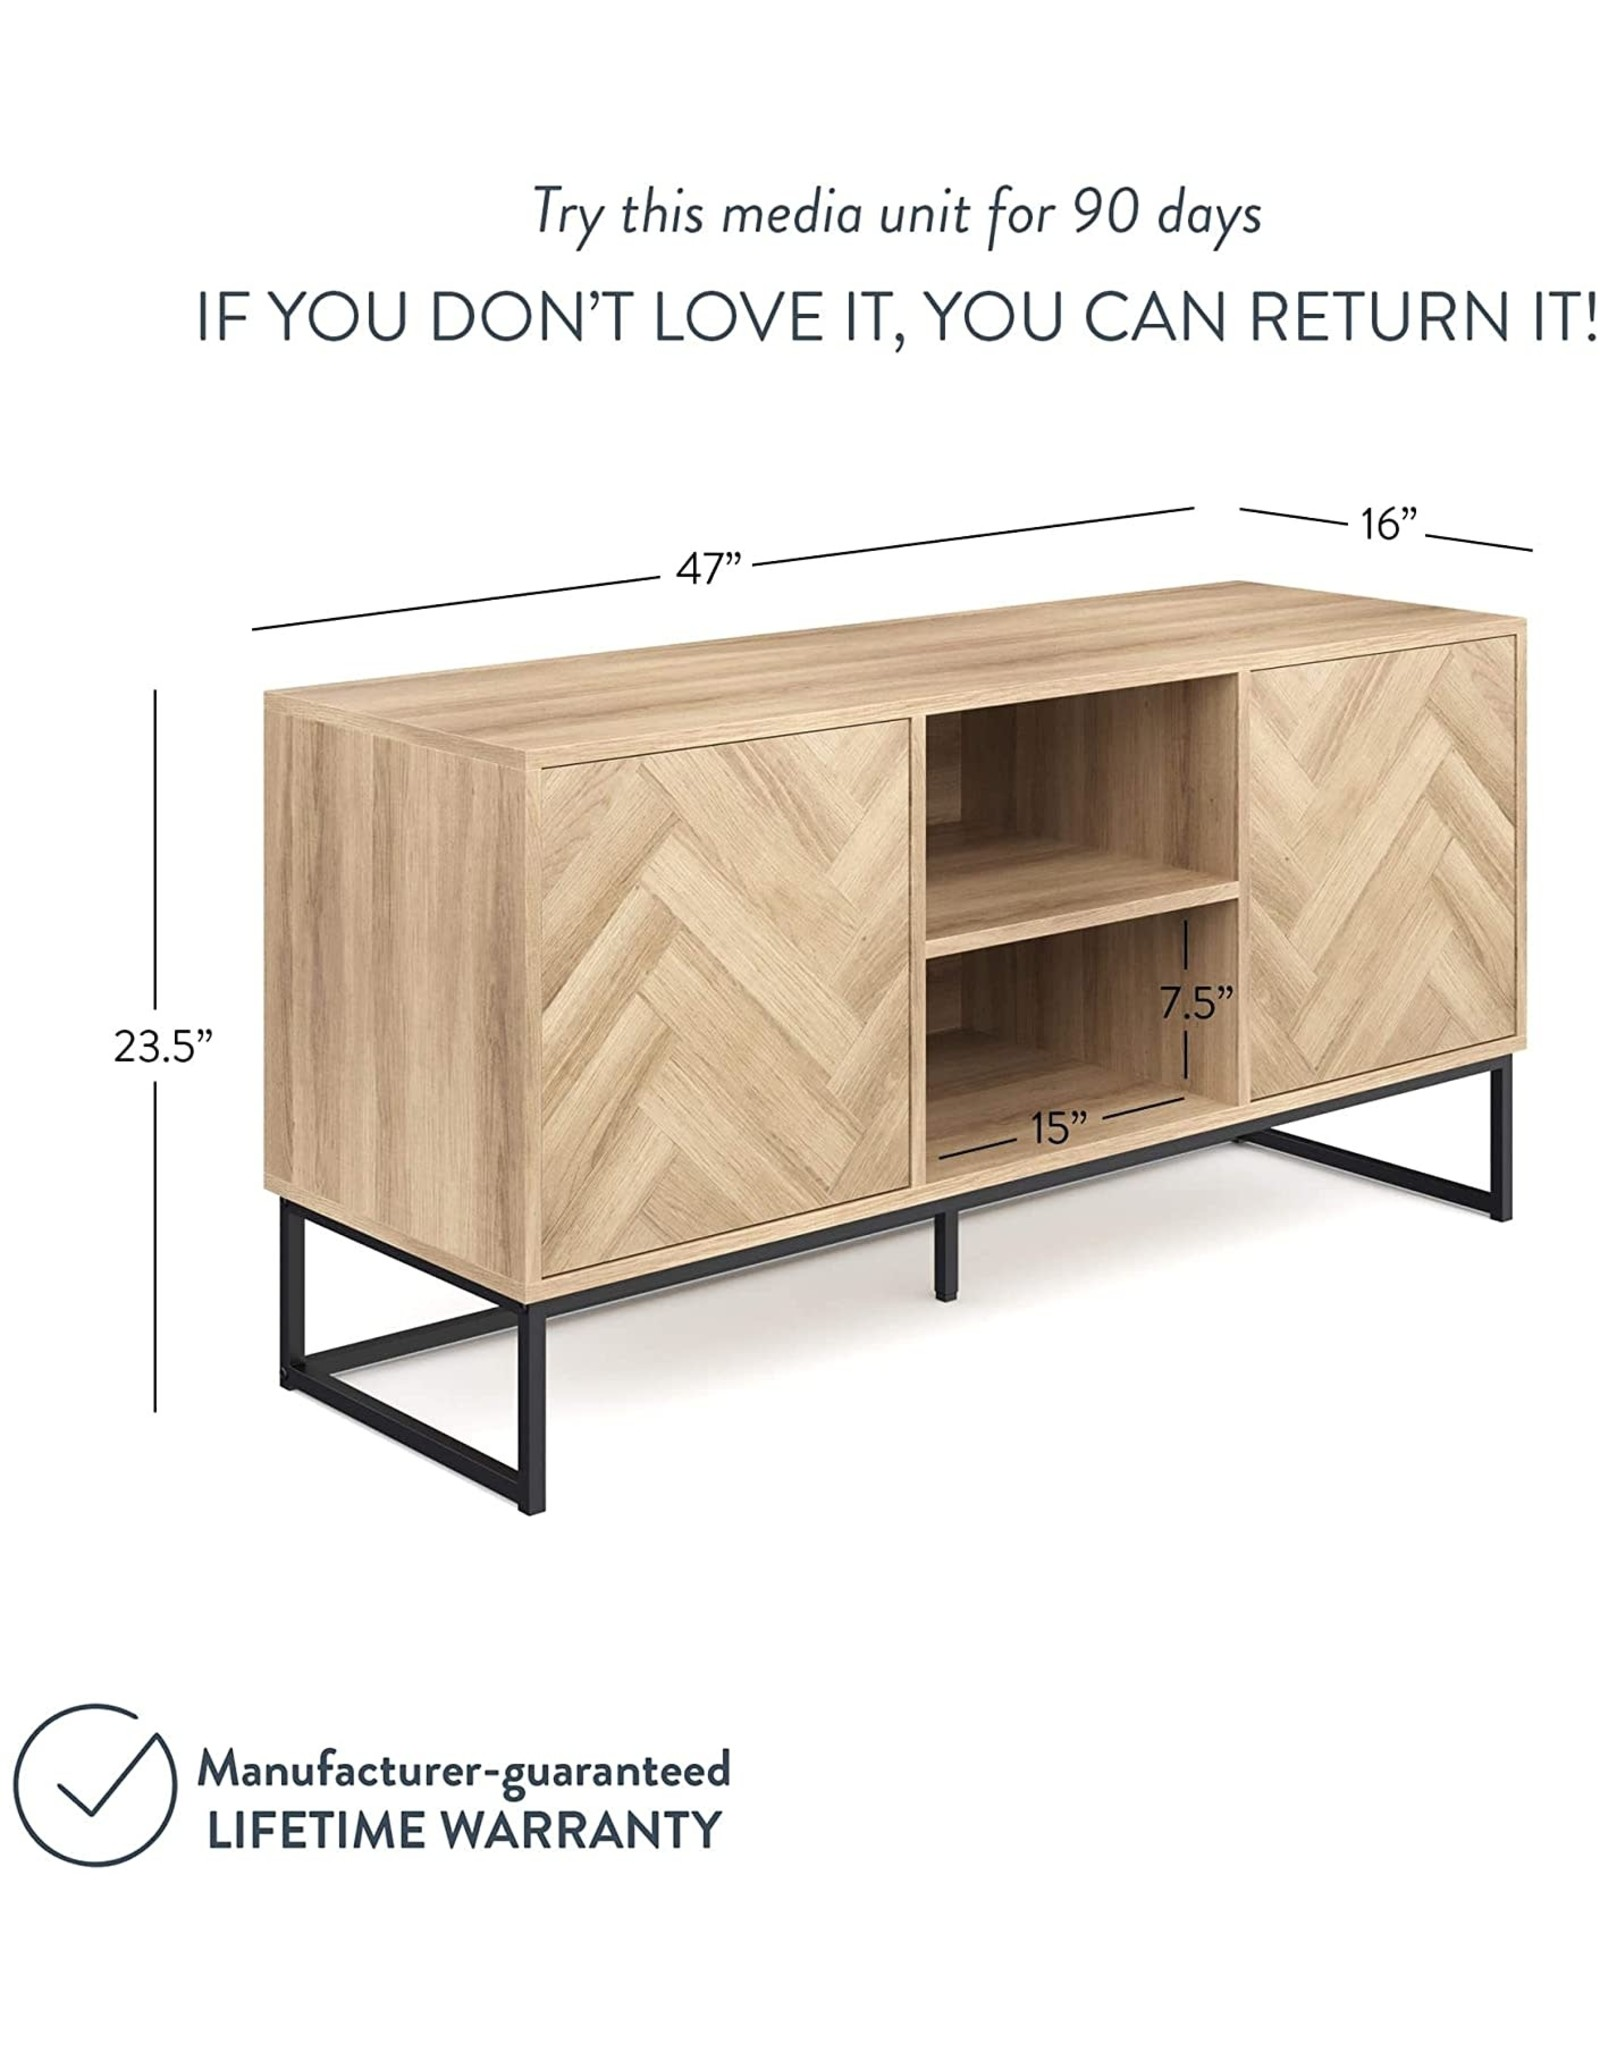 Nathan James Nathan James Dylan Media Console Cabinet or TV Stand with Doors for Hidden Storage in a Natural Reclaimed Herringbone Wood Pattern and Metal, Oak/Matte Black